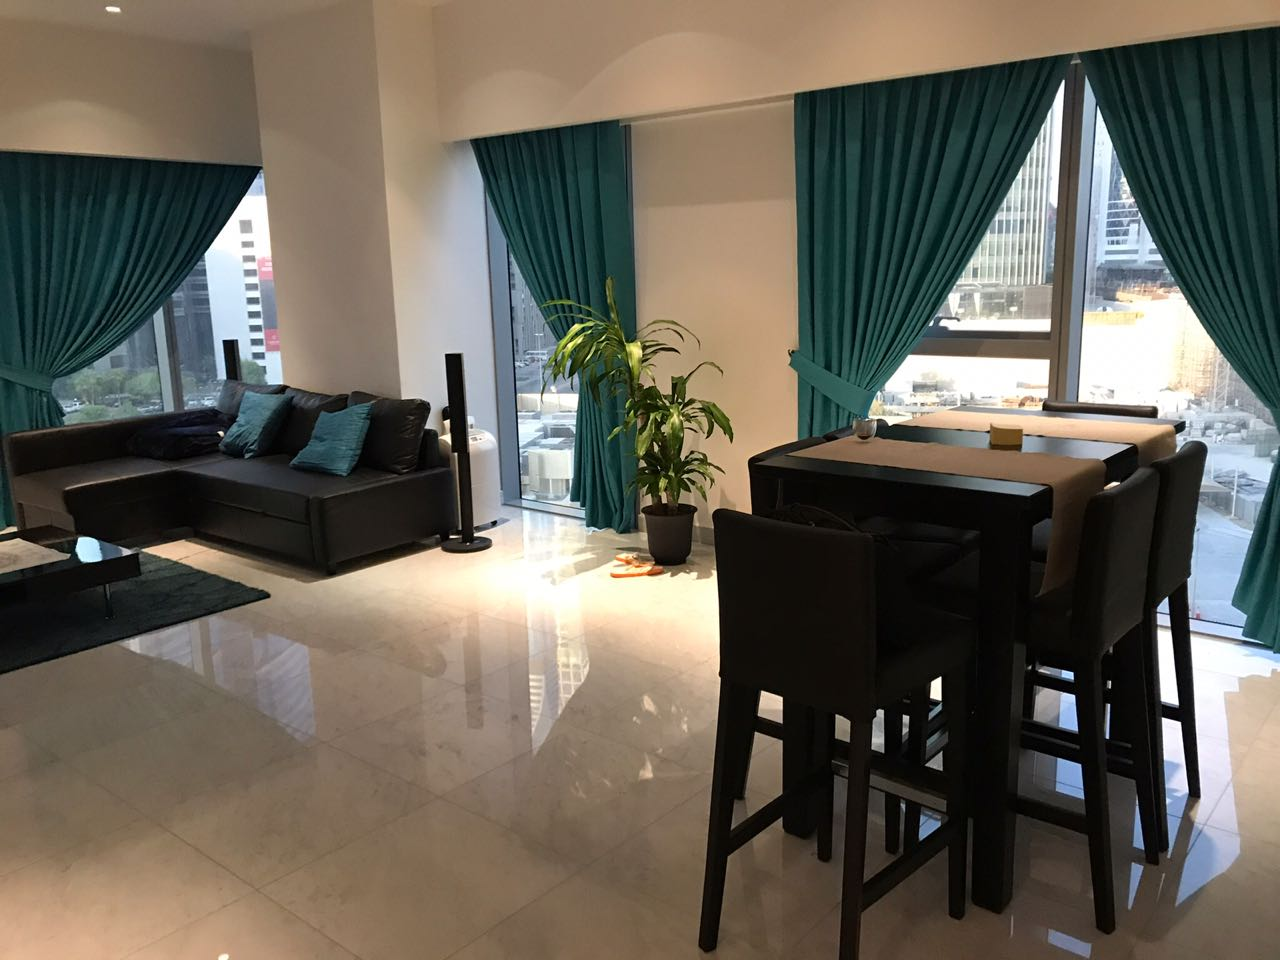 Must View Well Maintained 1 Bedroom